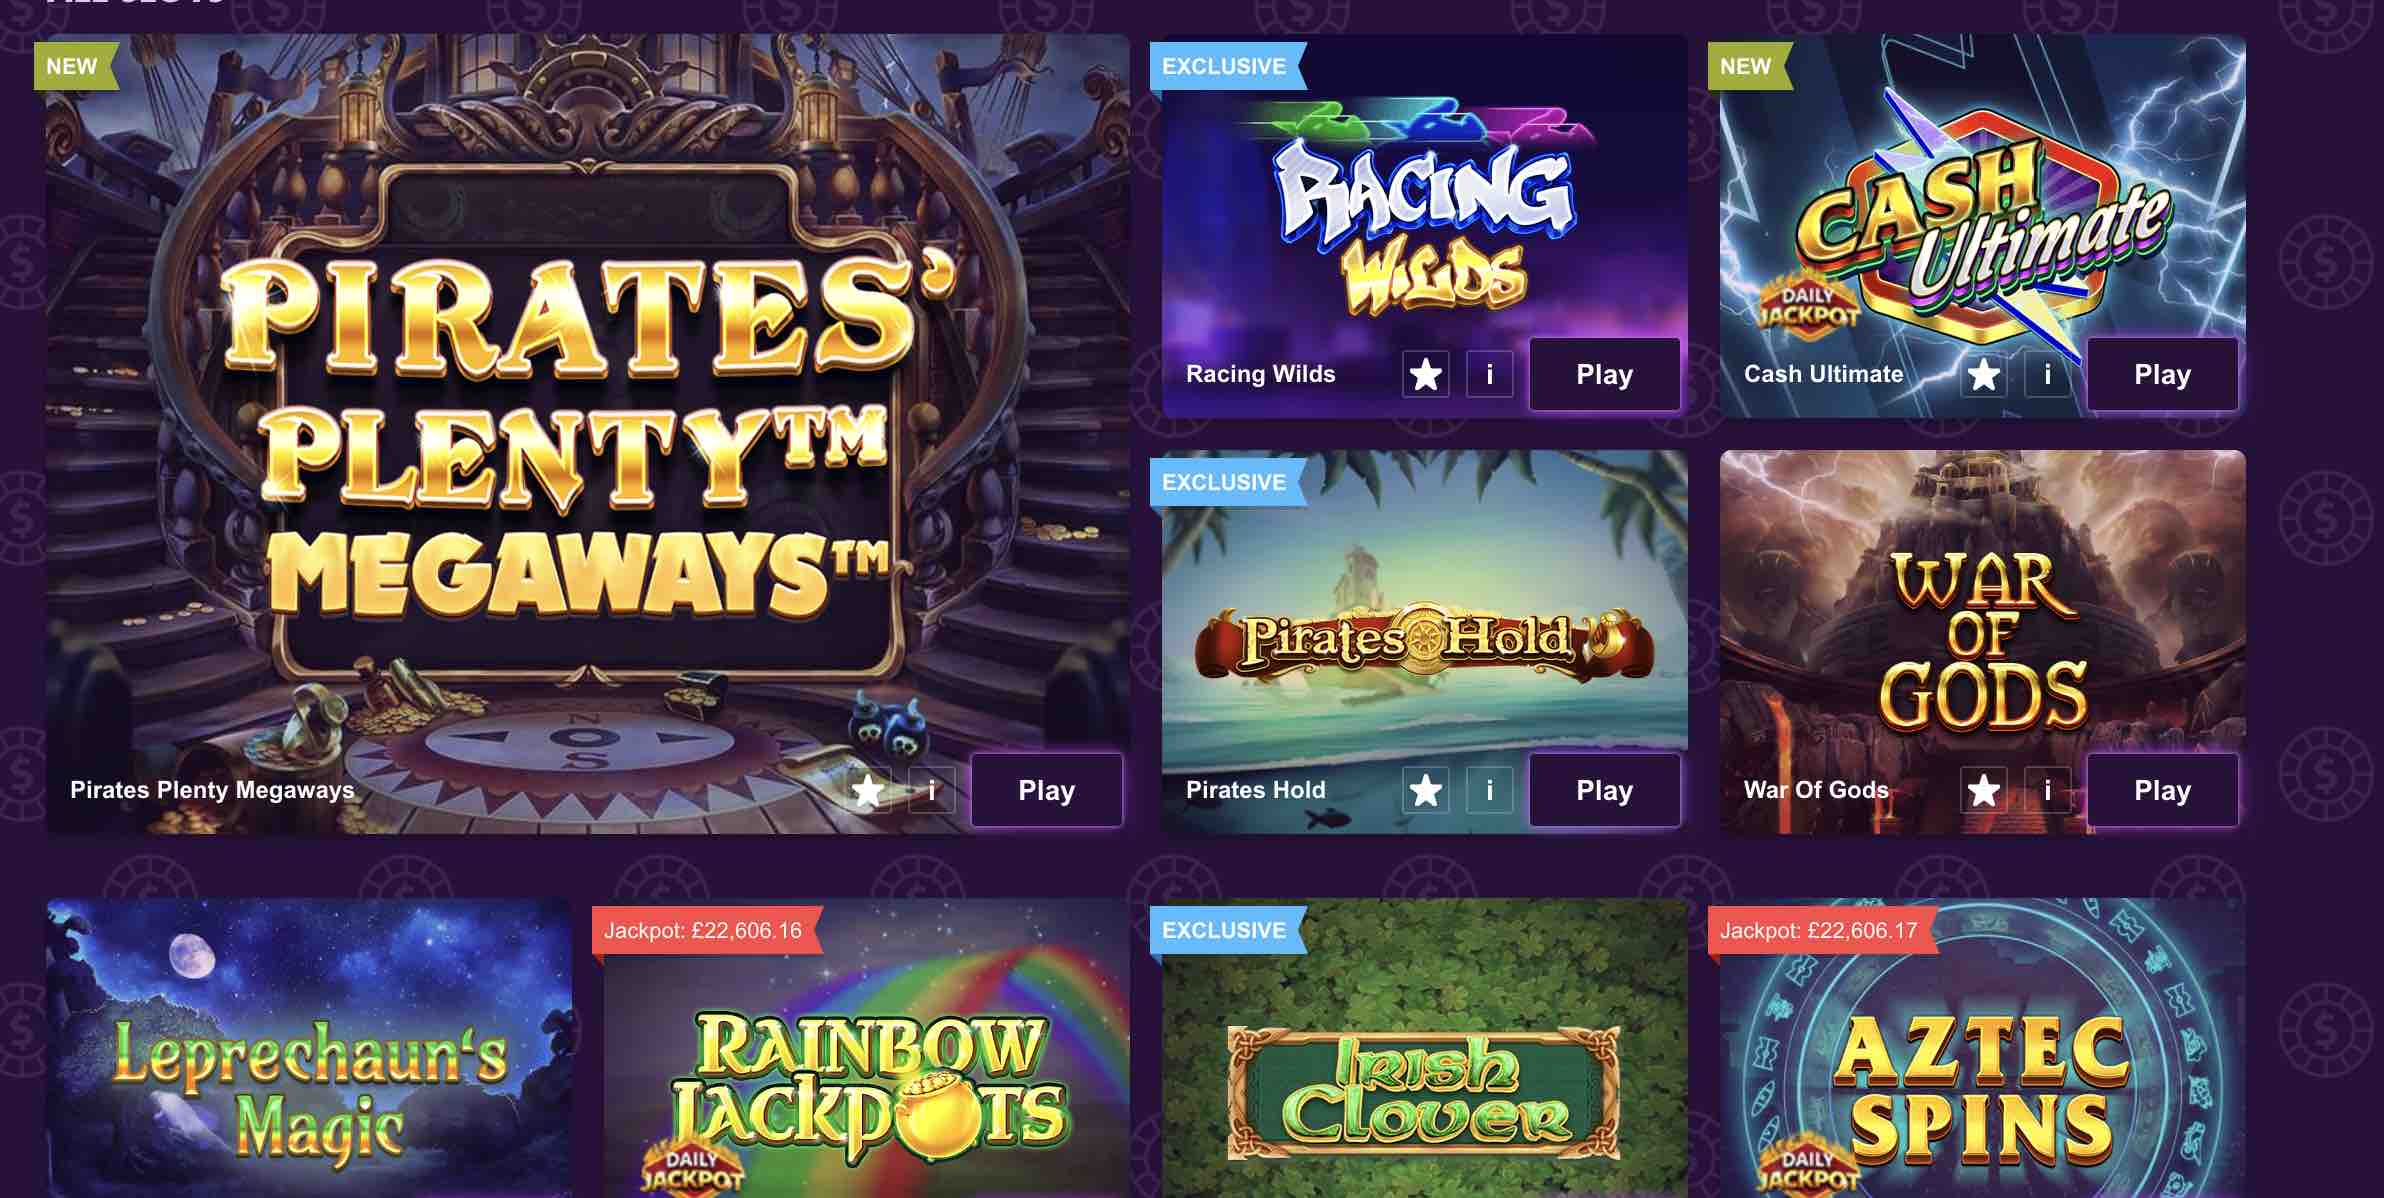 Best Games at Paddy Power Casino